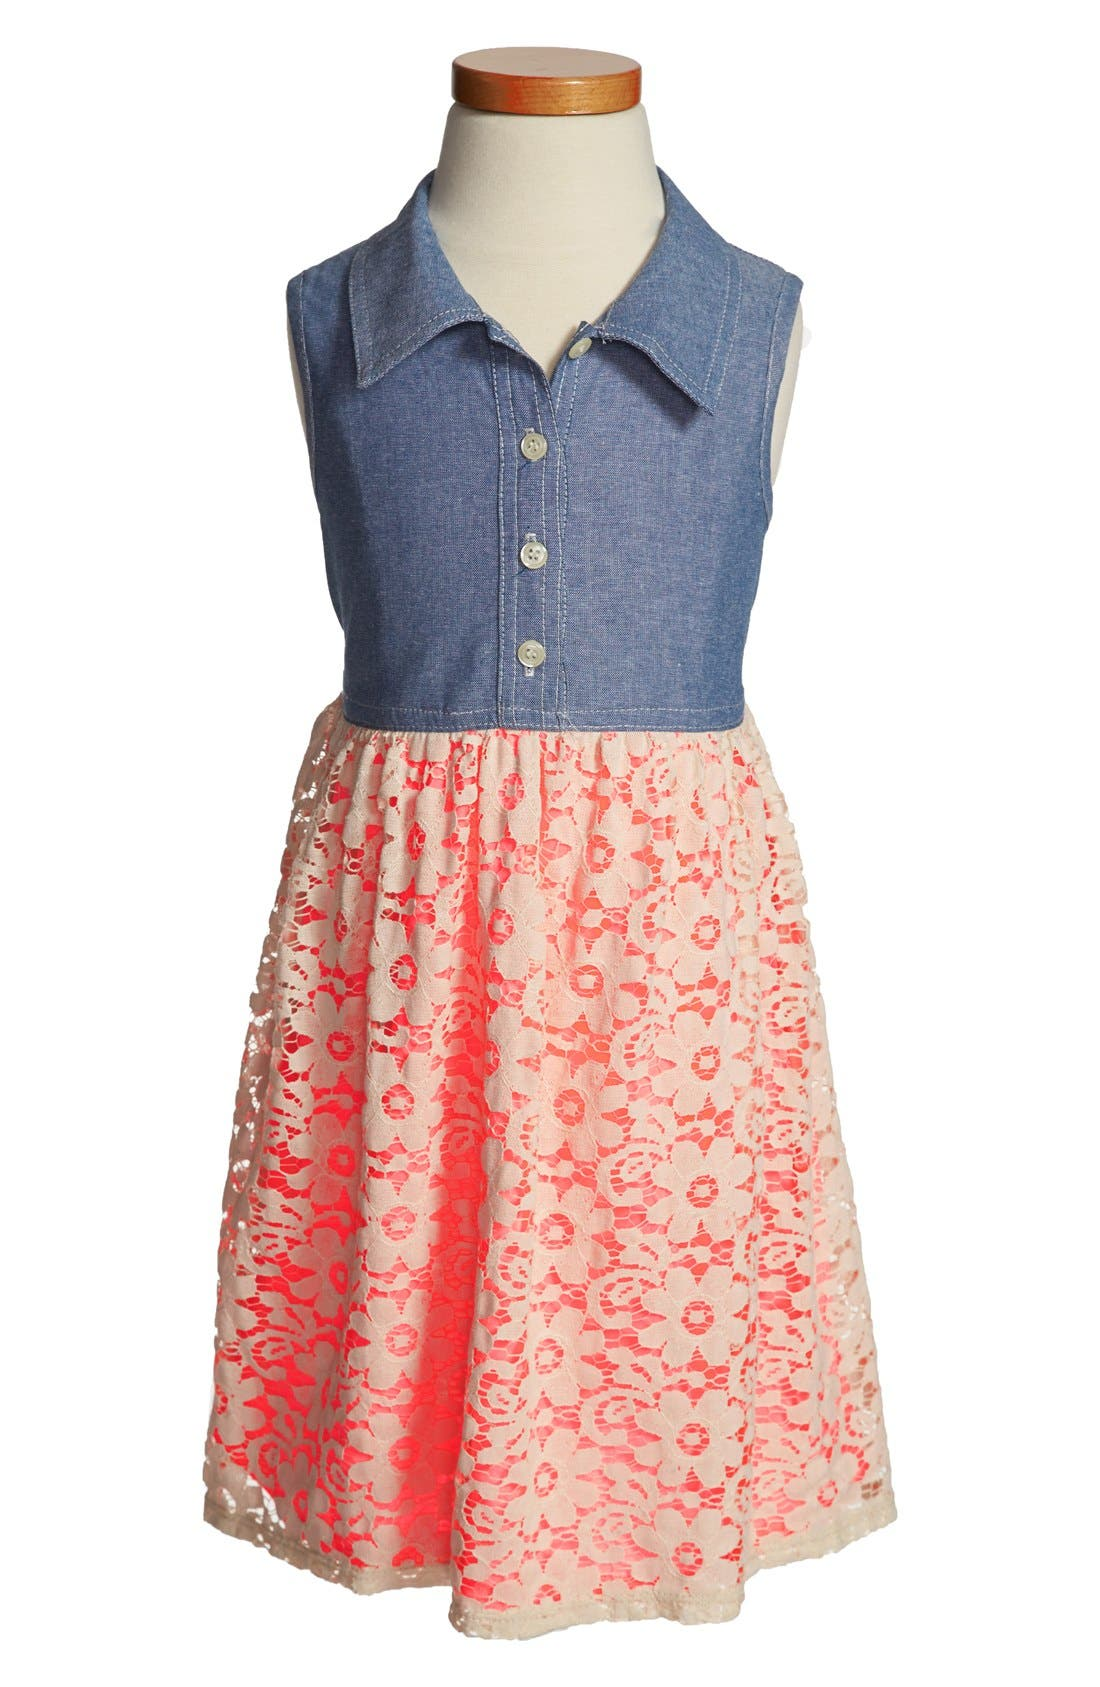 Alternate Image 1 Selected - Zunie Chambray & Lace Dress (Little Girls & Big Girls)